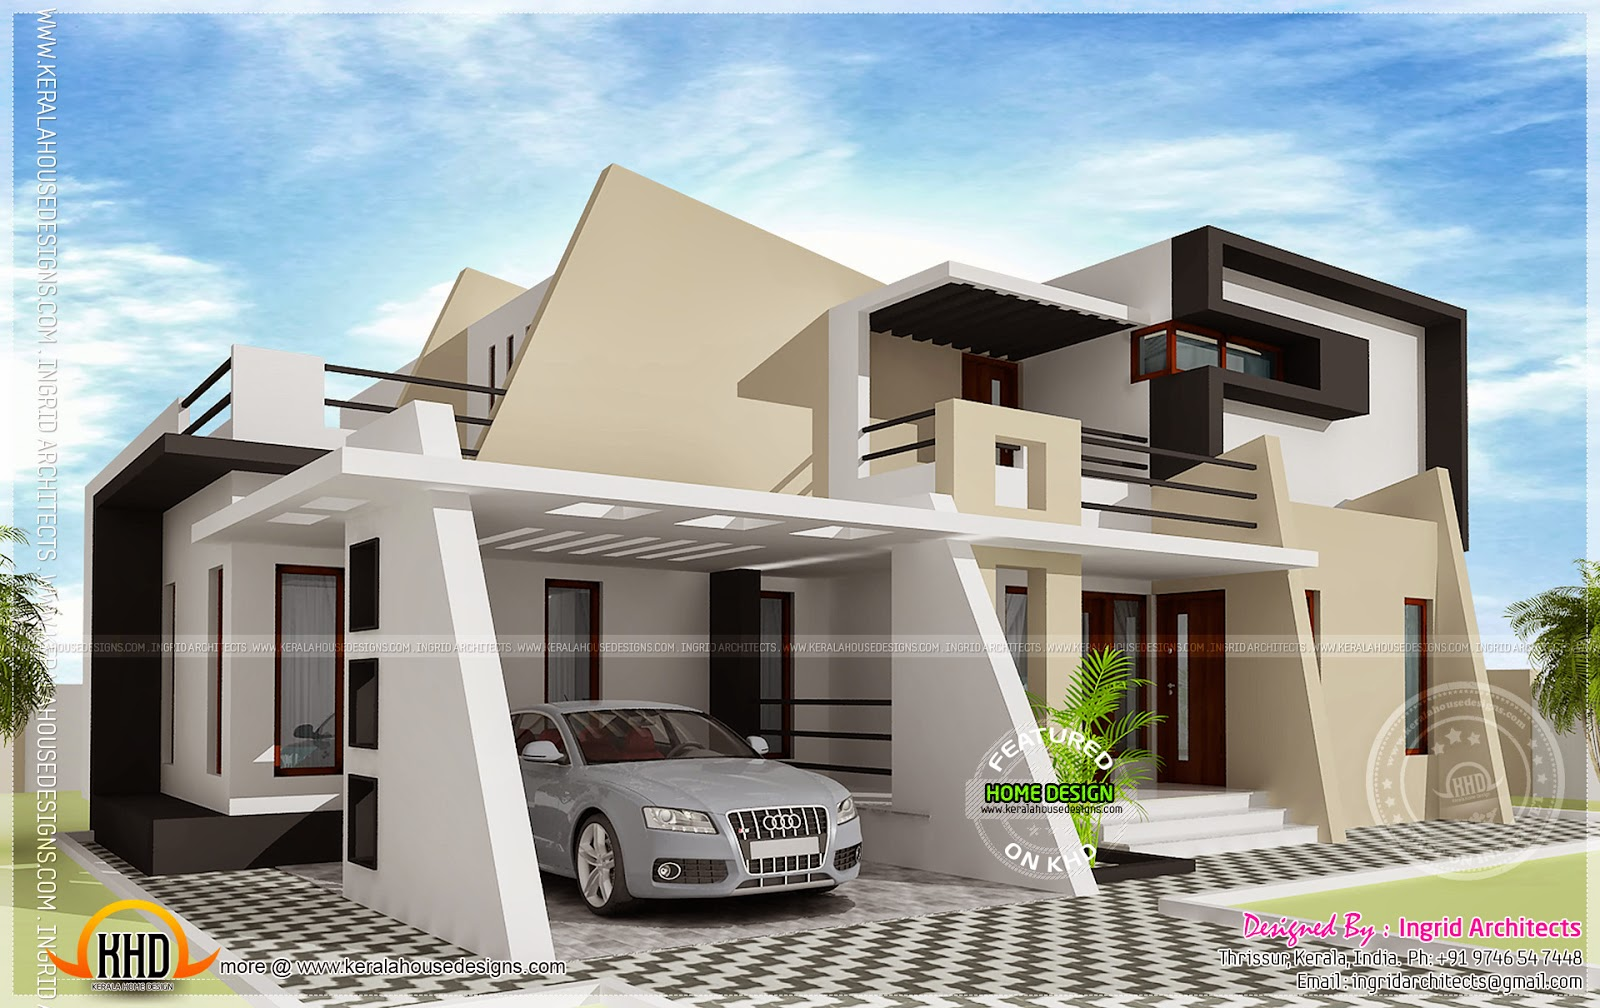 Contemporary Home Plans Of March 2014 Kerala Home Design And Floor Plans